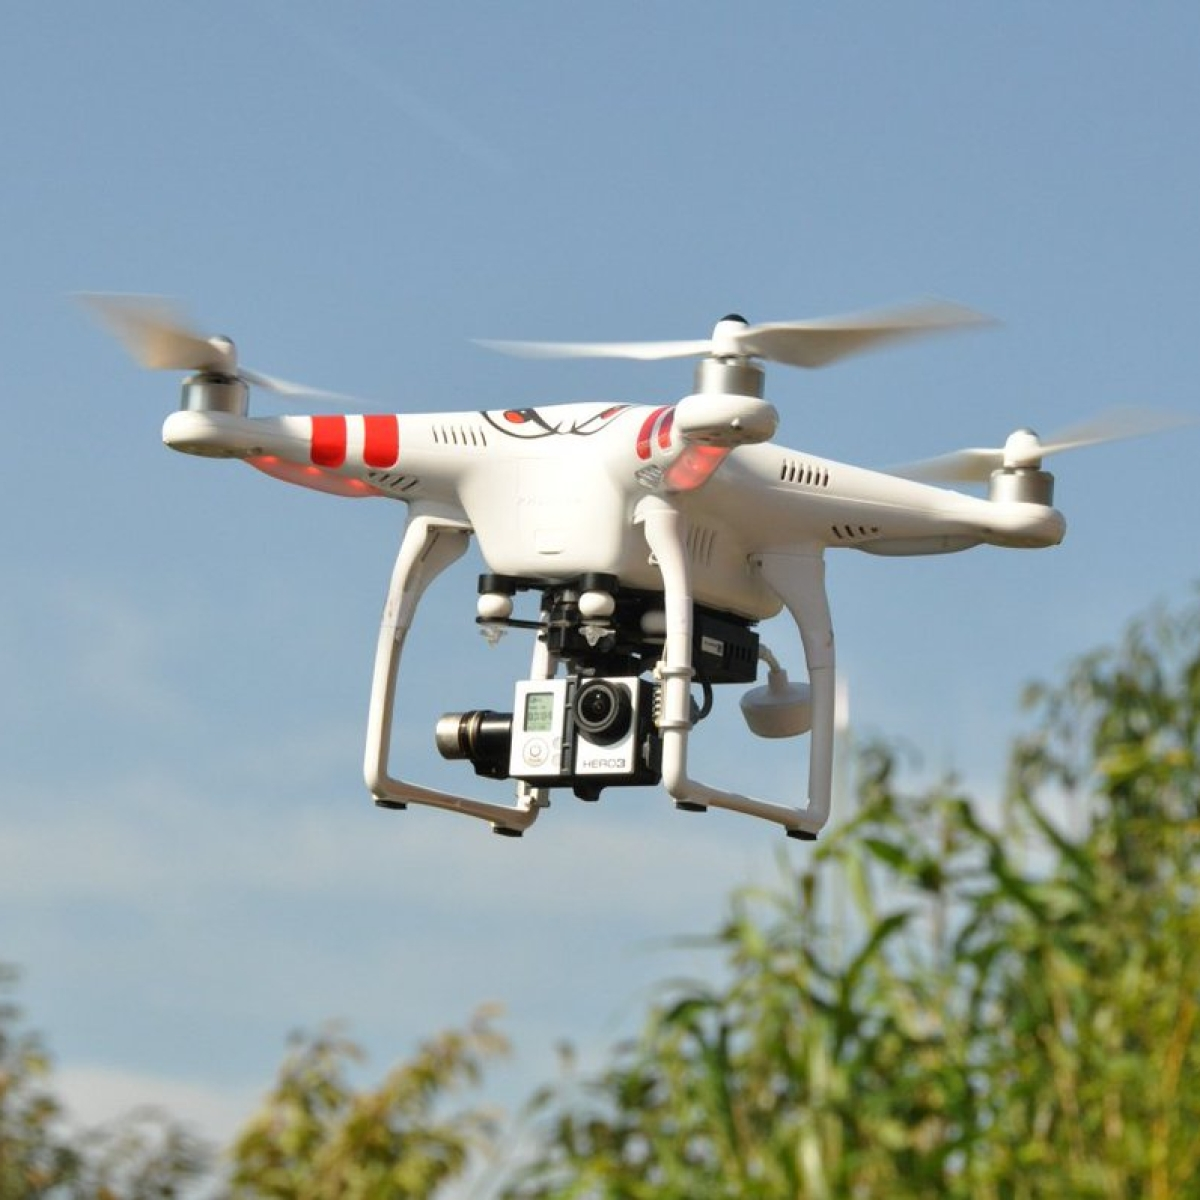 Better disaster warning system uses drones